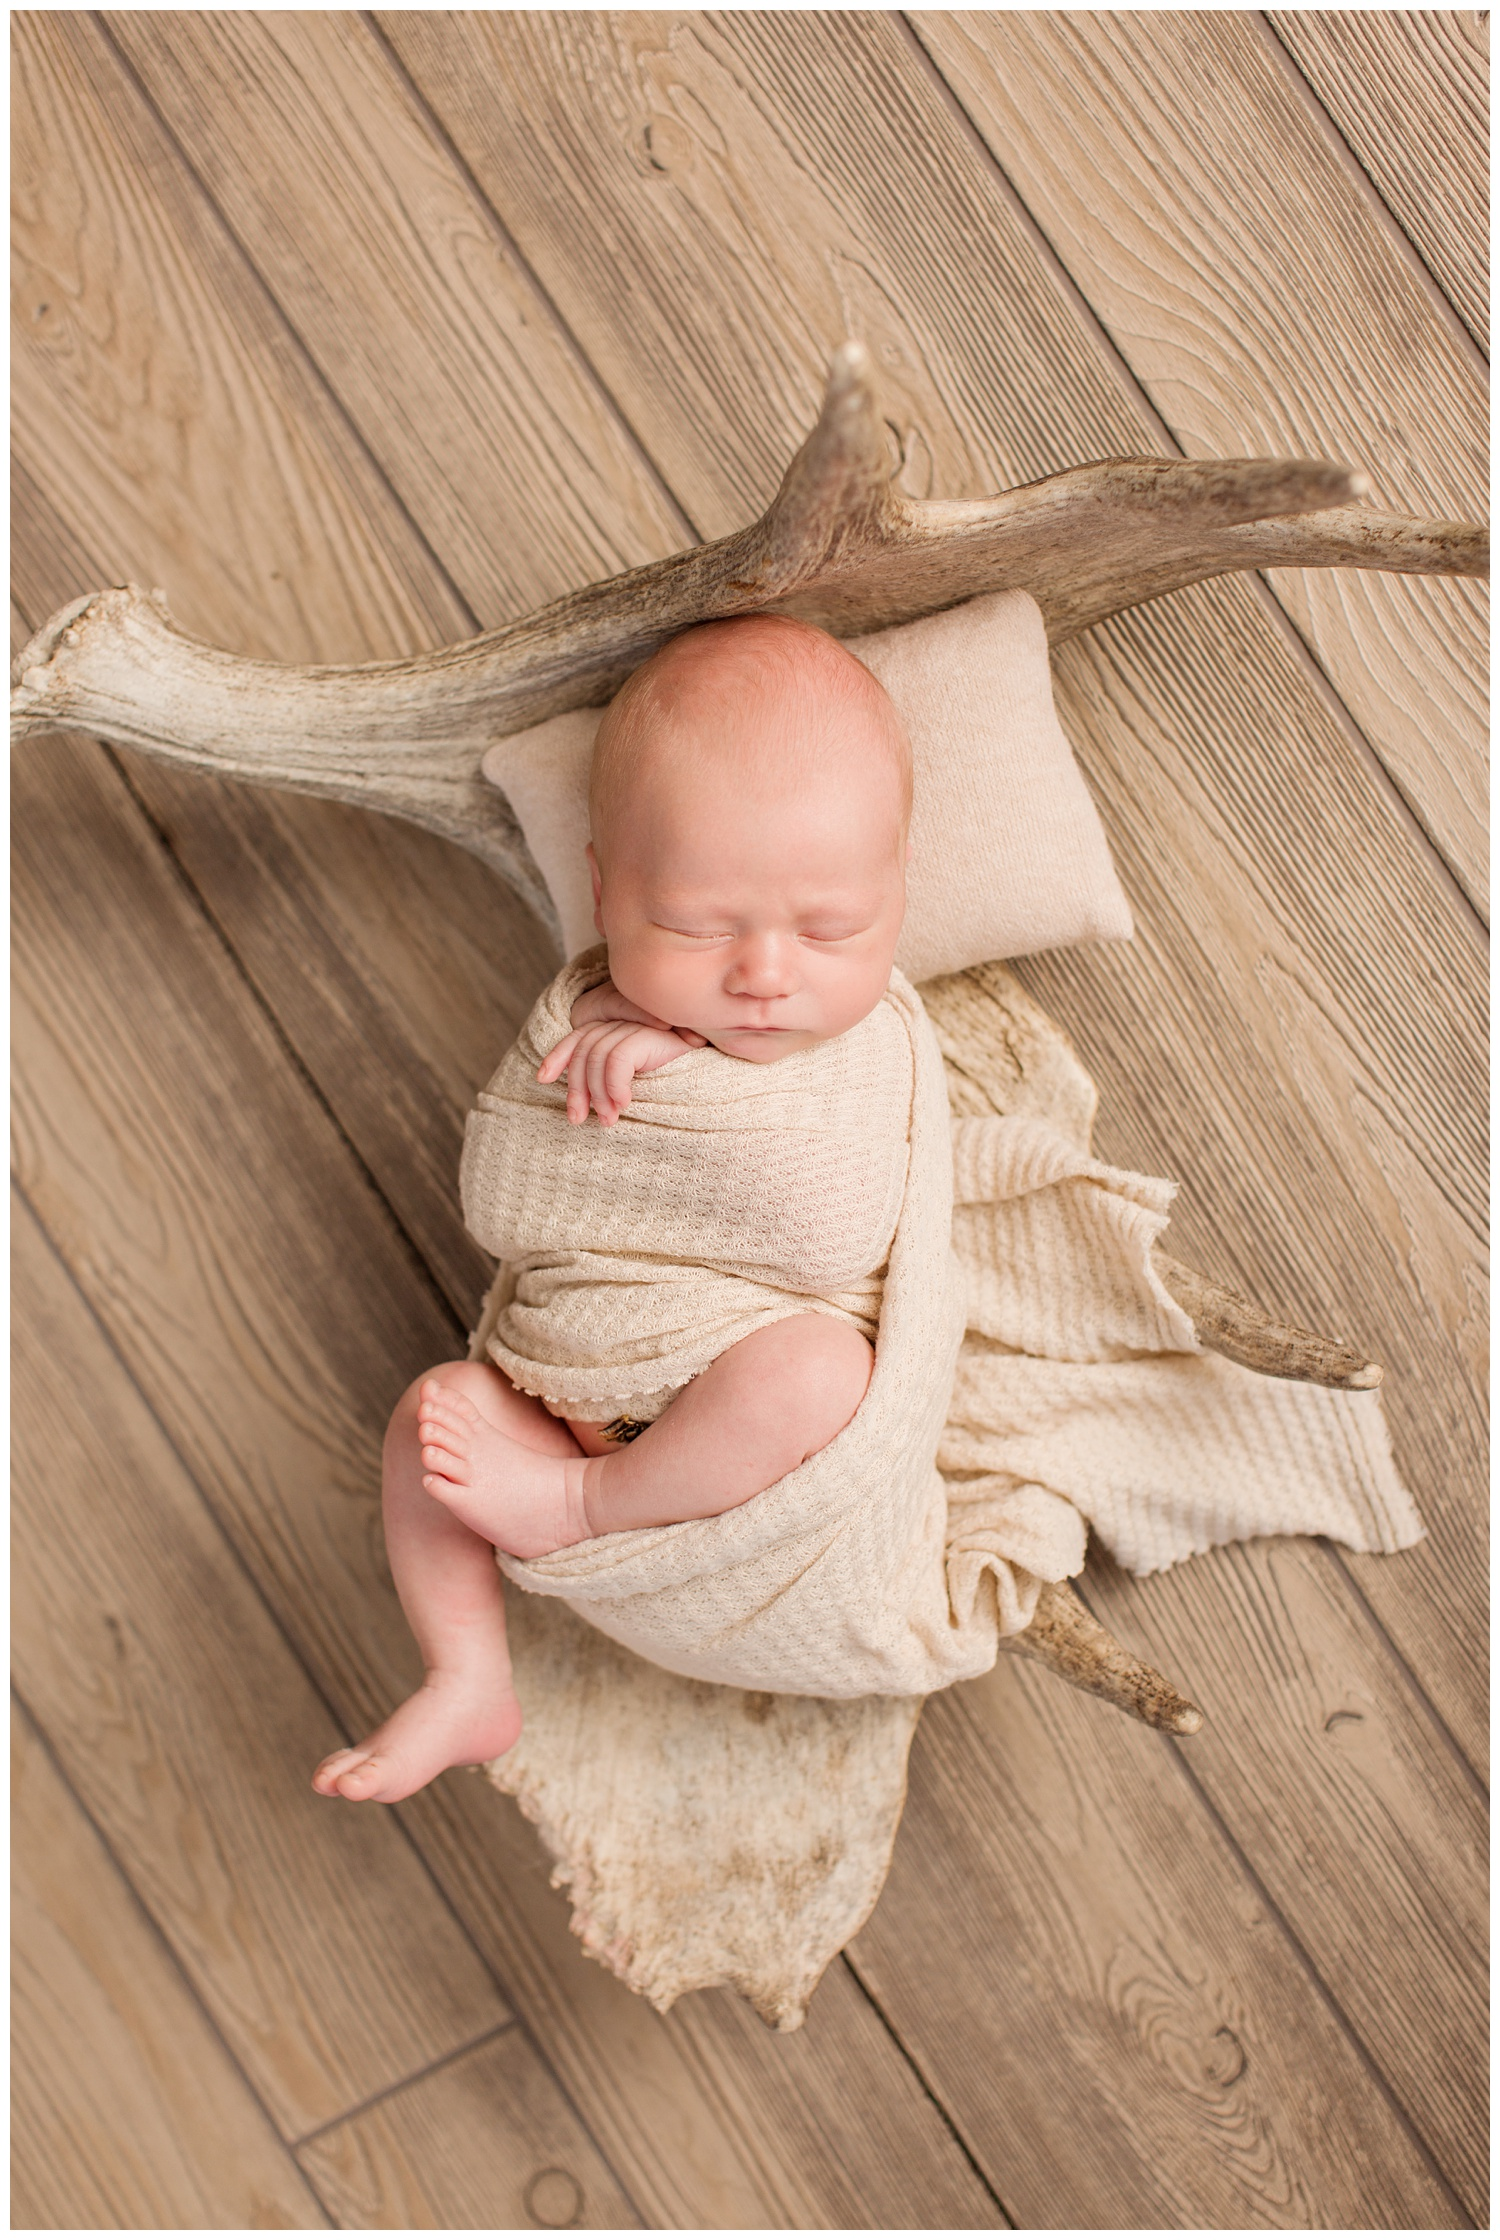 Newborn baby wrapped in a nude color swaddle laying in a moose antler on a wooden floor